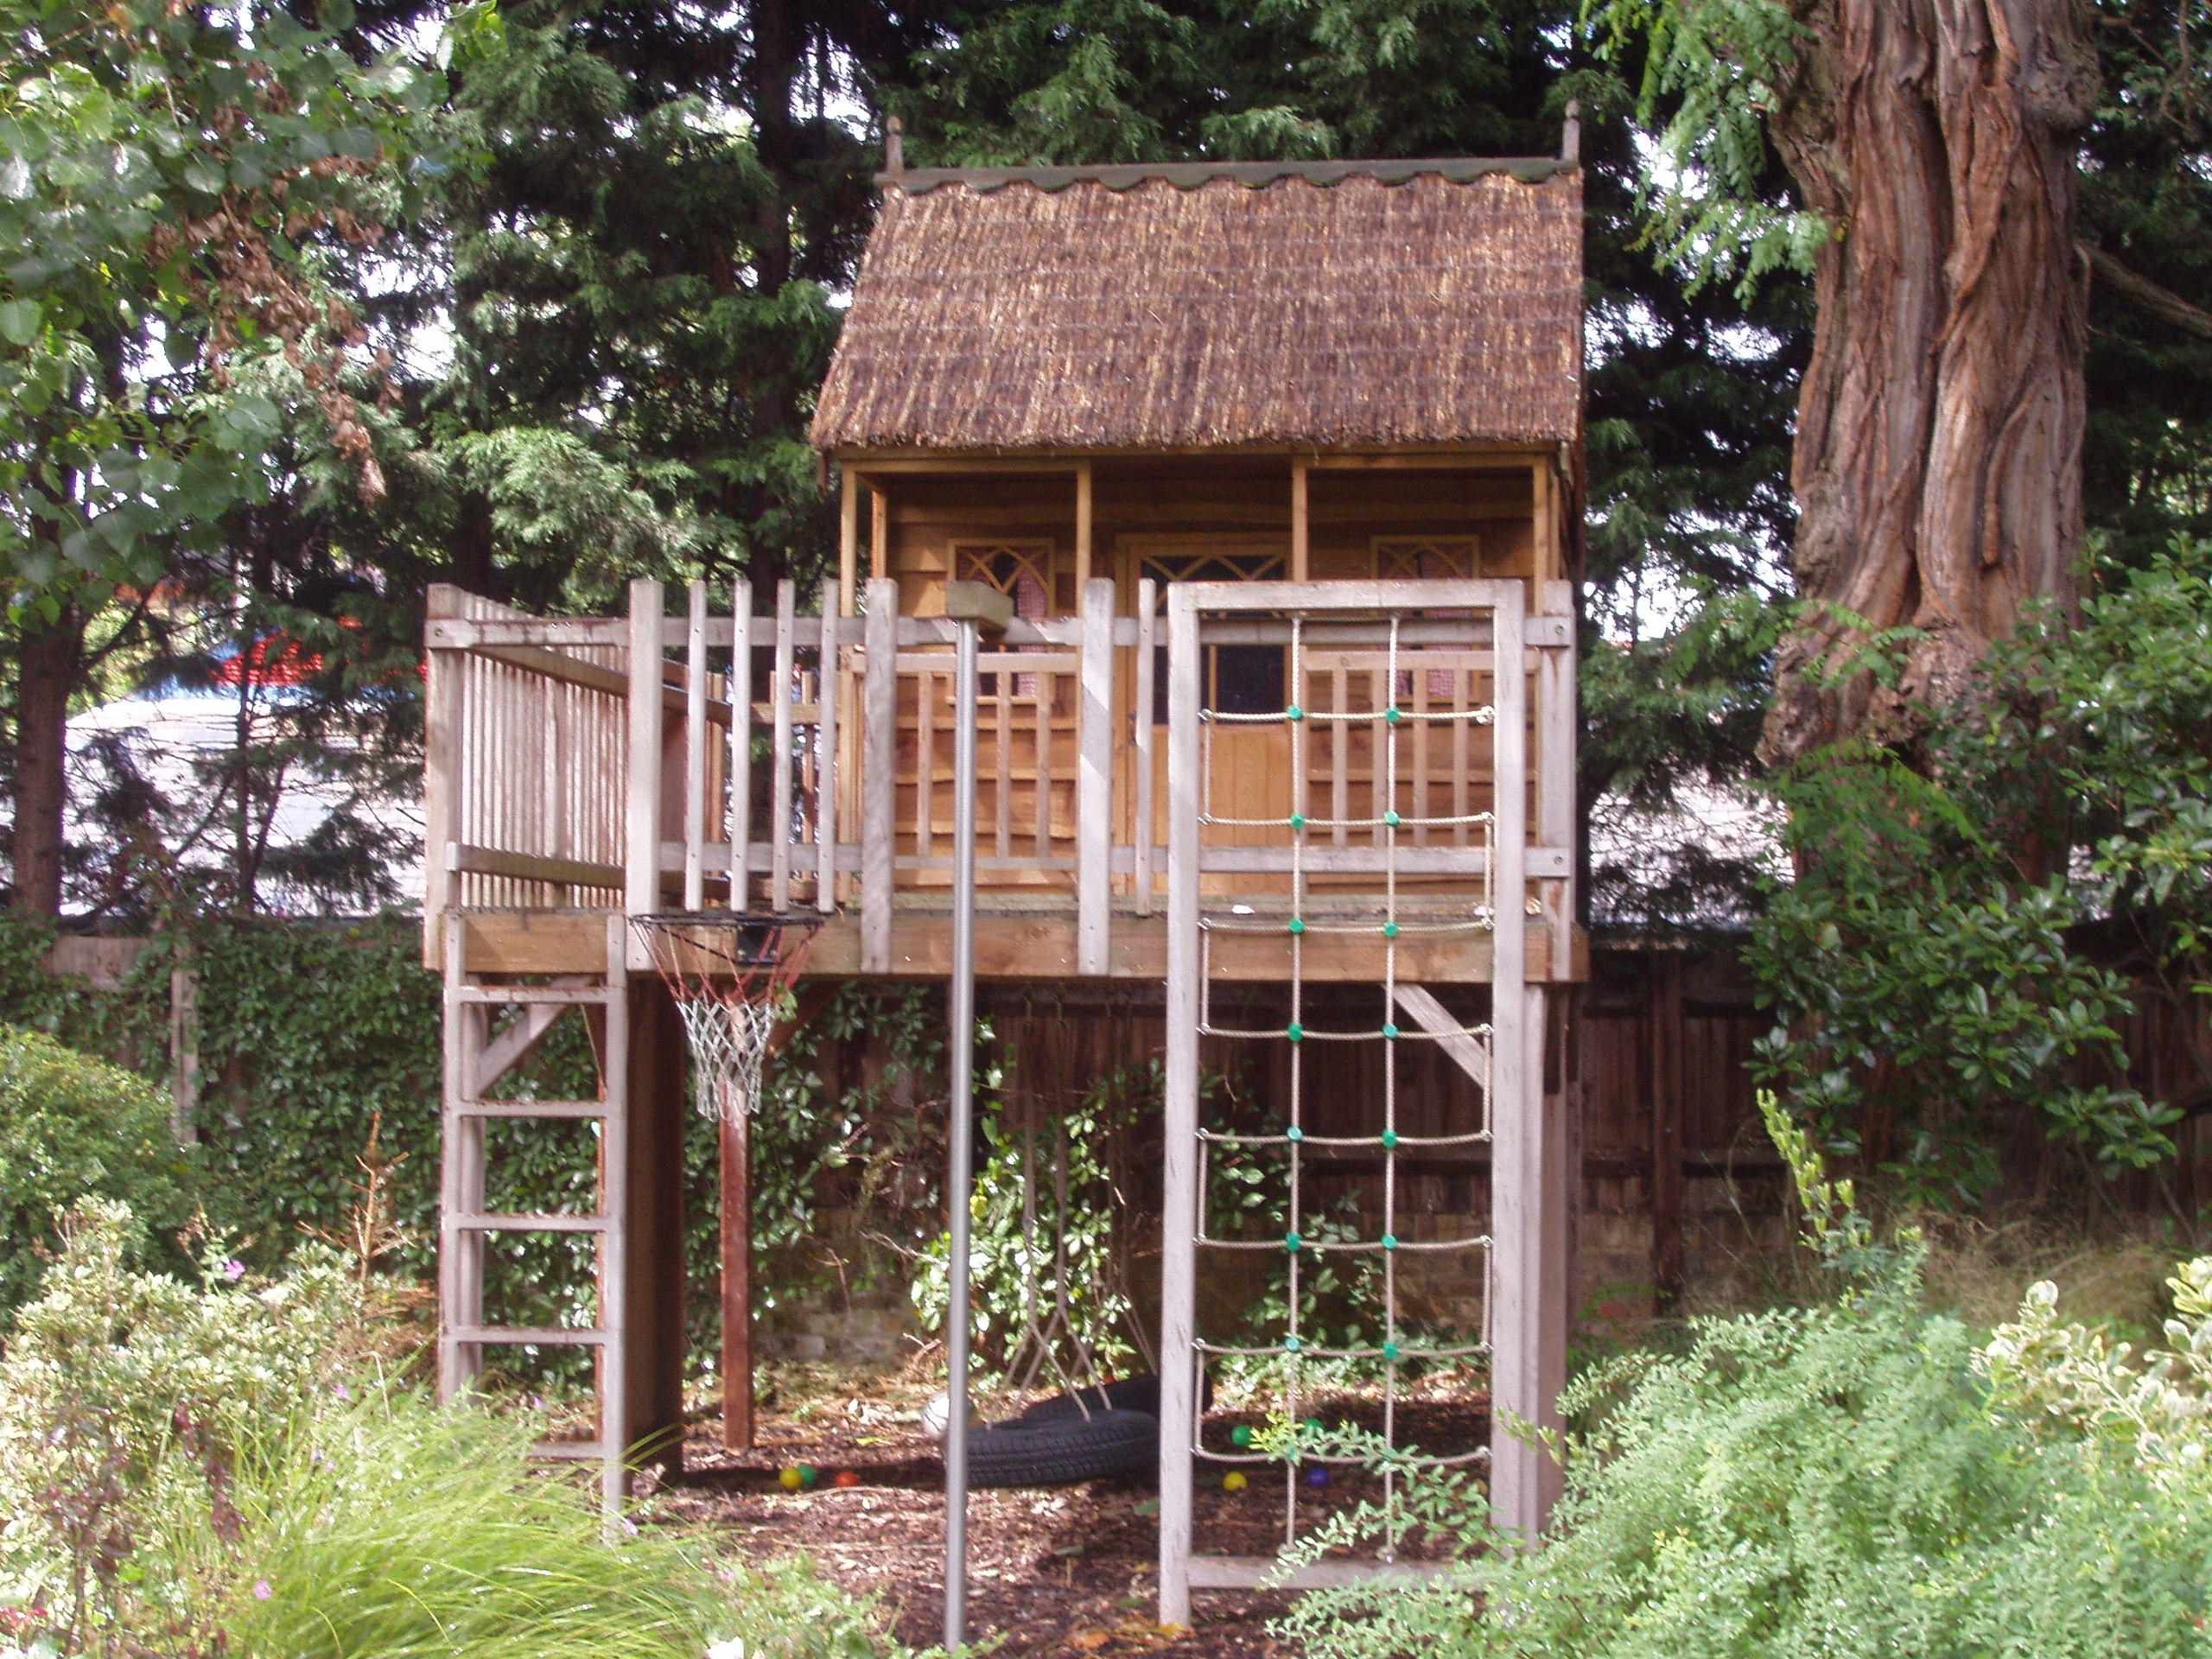 Simple Tree House Plans For Kids 10 amazing tree houses: plans, pictures, designs & building ideas